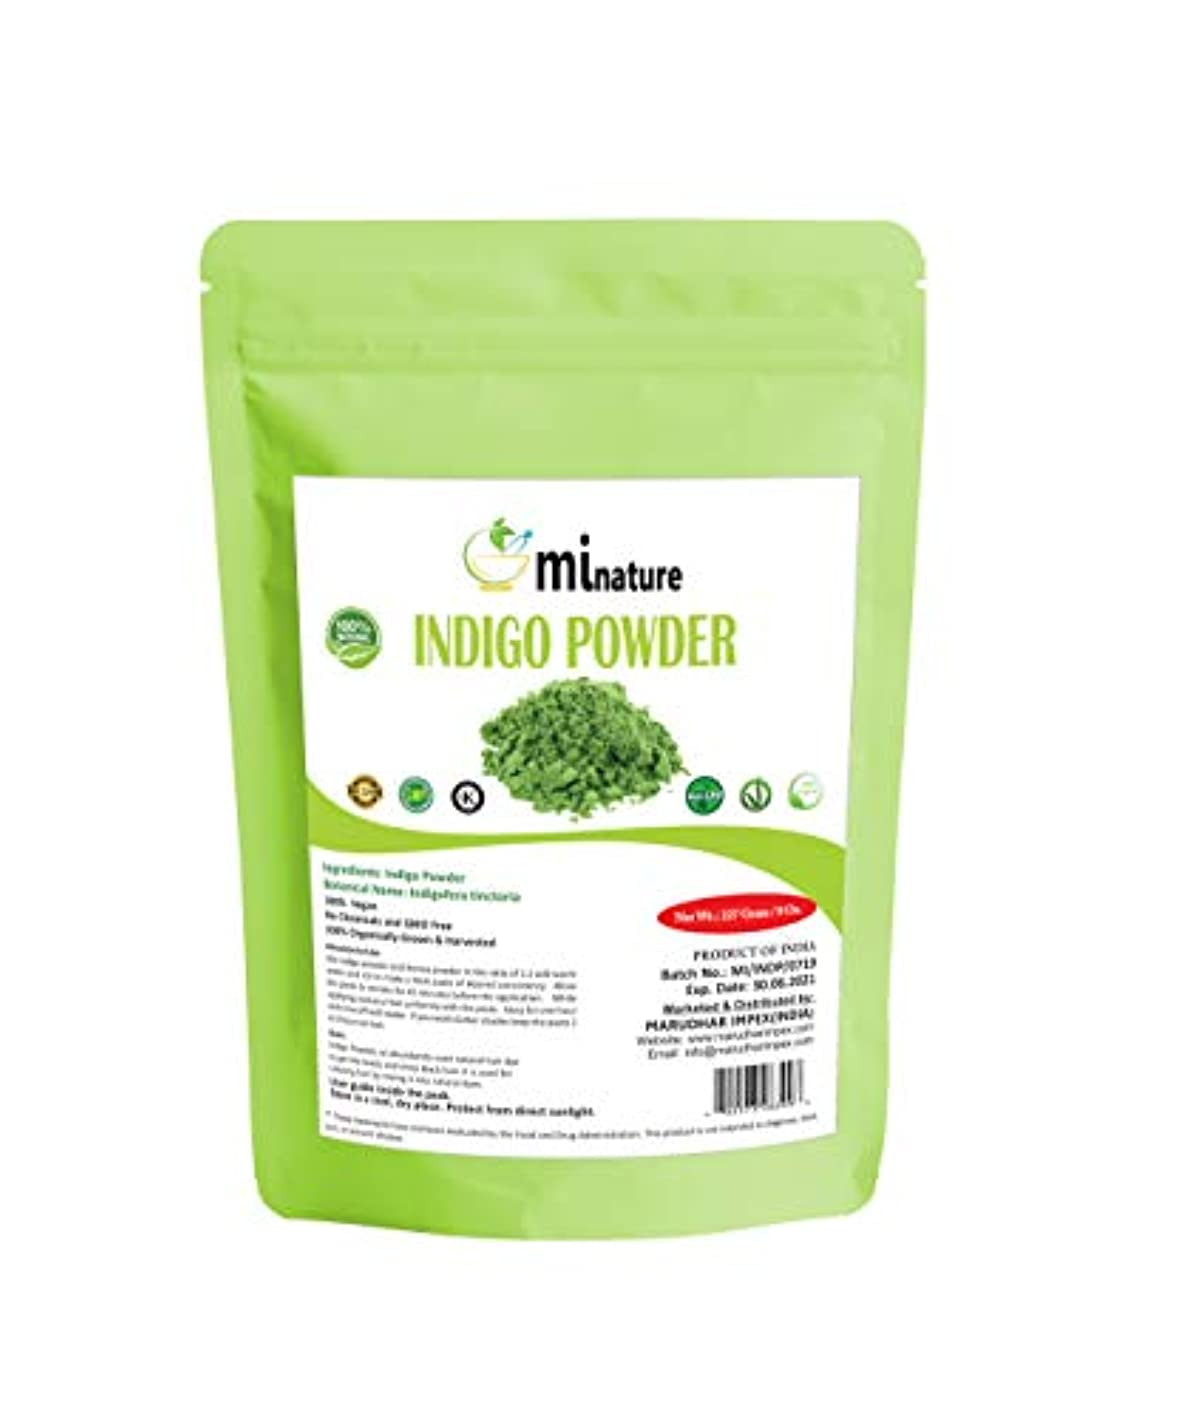 写真を撮るスタイル溶けたmi nature Indigo Powder -INDIGOFERA TINCTORIA ,(100% NATURAL , ORGANICALLY GROWN ) 1/2 LB (227 grams) RESEALABLE...